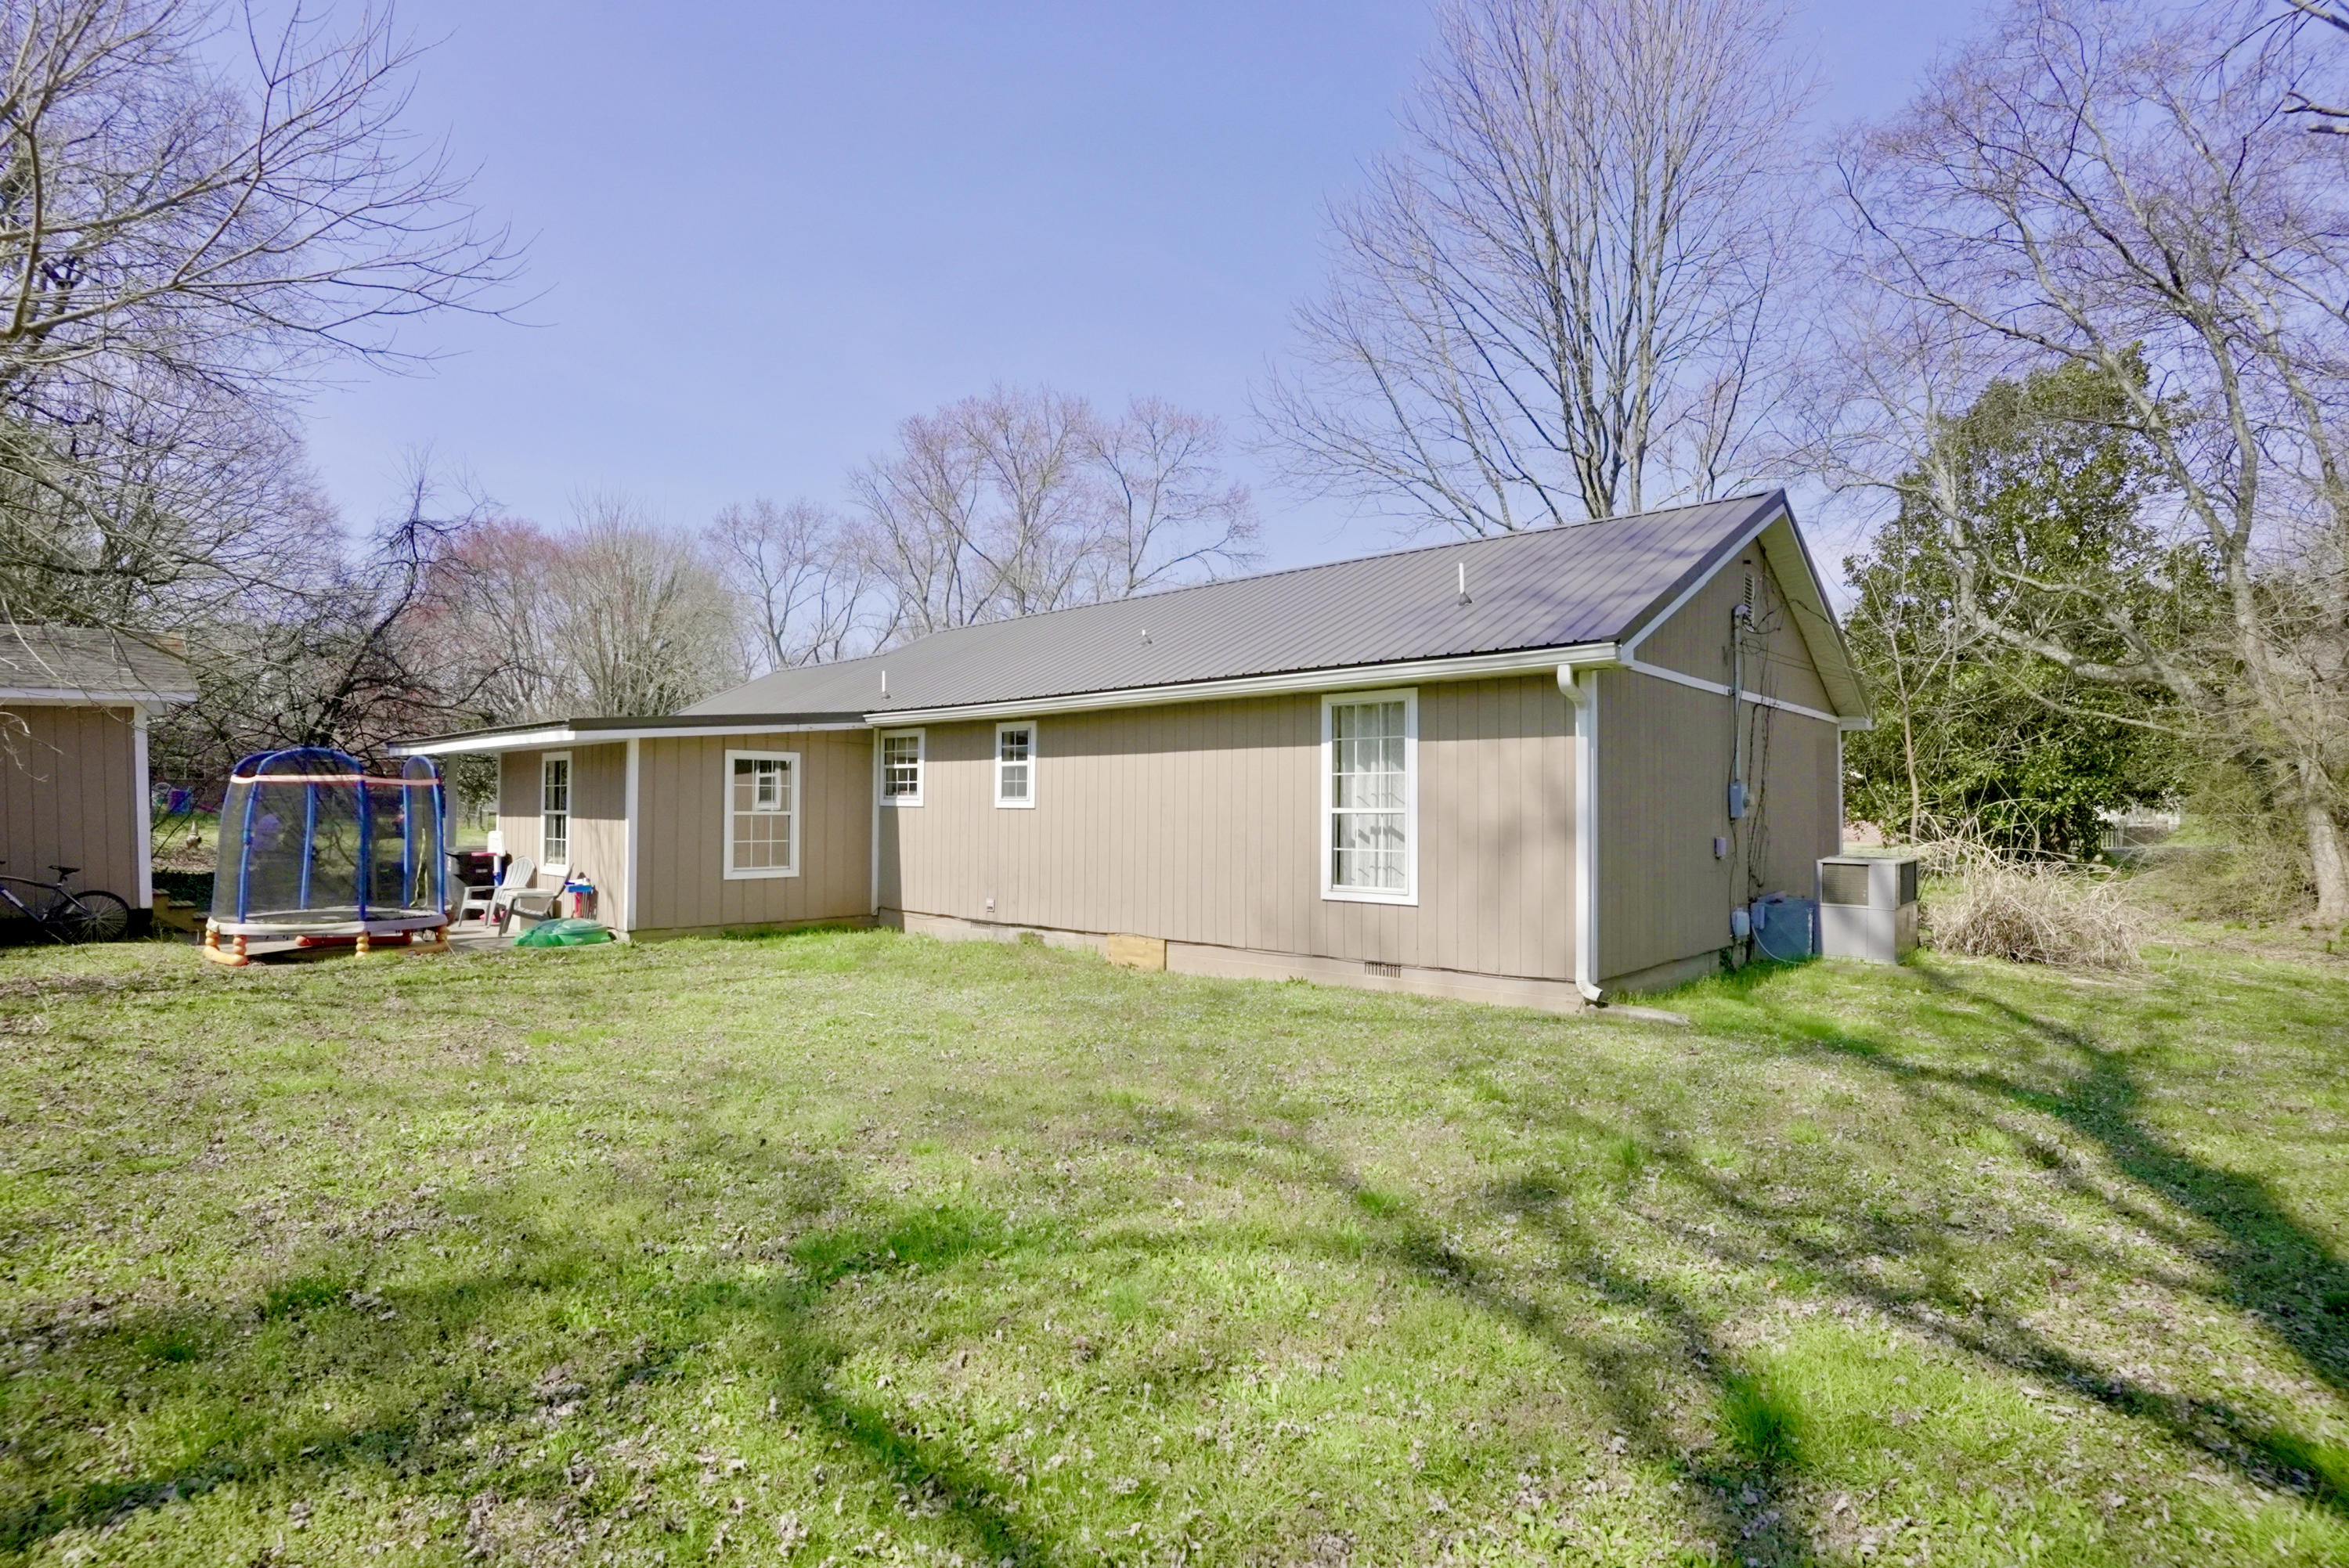 1111 Apache Street, Athens, Tennessee 37303, 3 Bedrooms Bedrooms, ,2 BathroomsBathrooms,Single Family,For Sale,1111 Apache Street,1145727